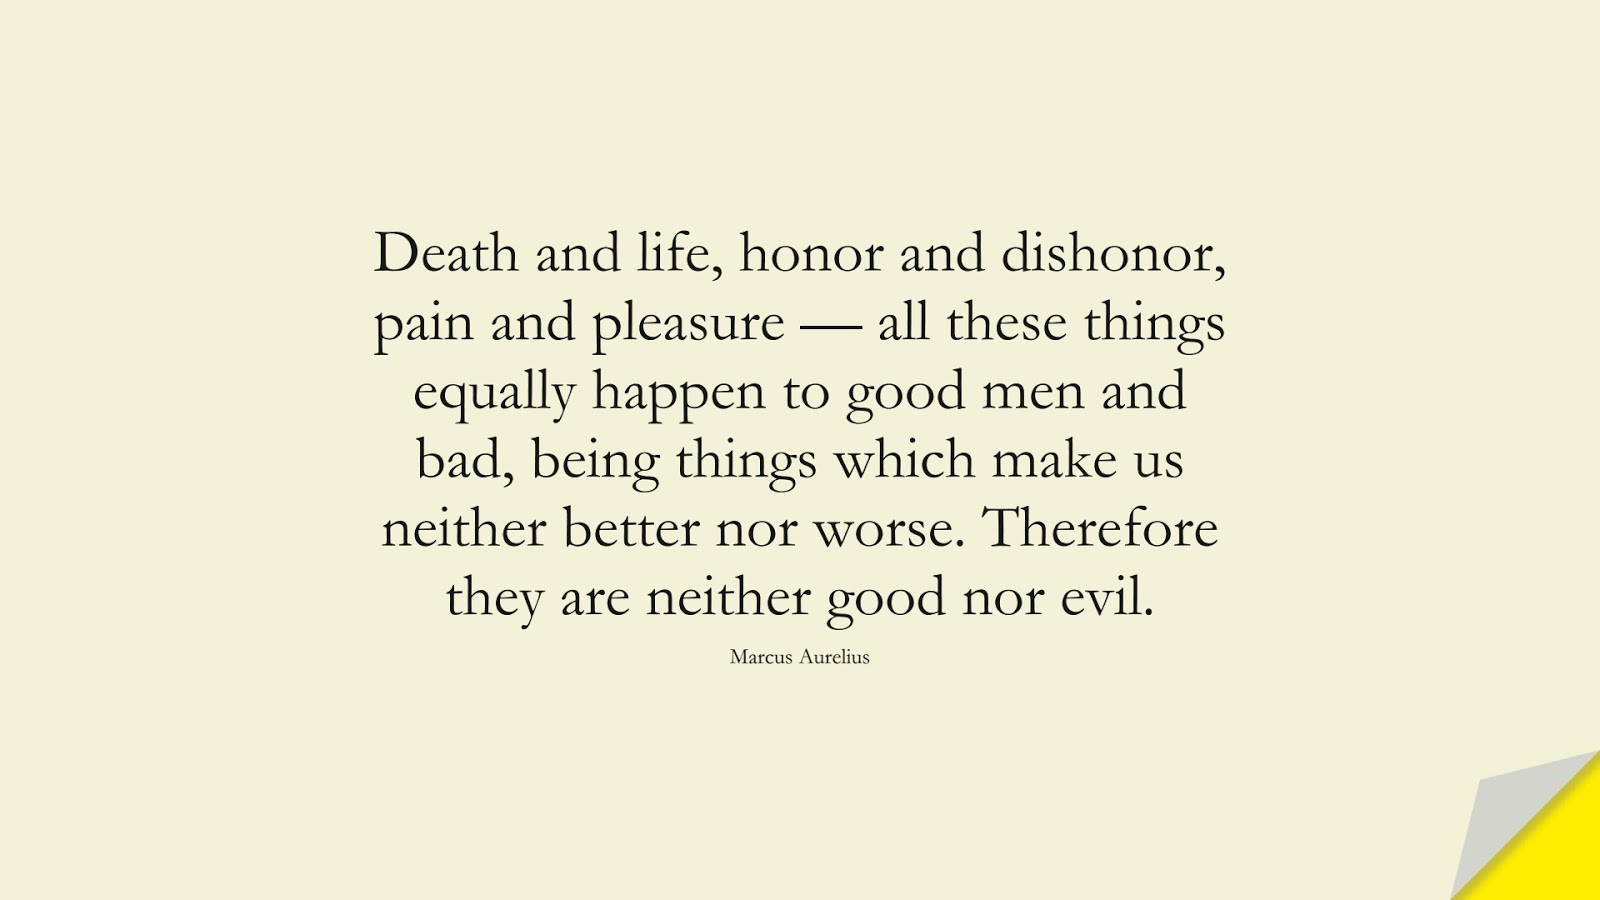 Death and life, honor and dishonor, pain and pleasure — all these things equally happen to good men and bad, being things which make us neither better nor worse. Therefore they are neither good nor evil. (Marcus Aurelius);  #MarcusAureliusQuotes